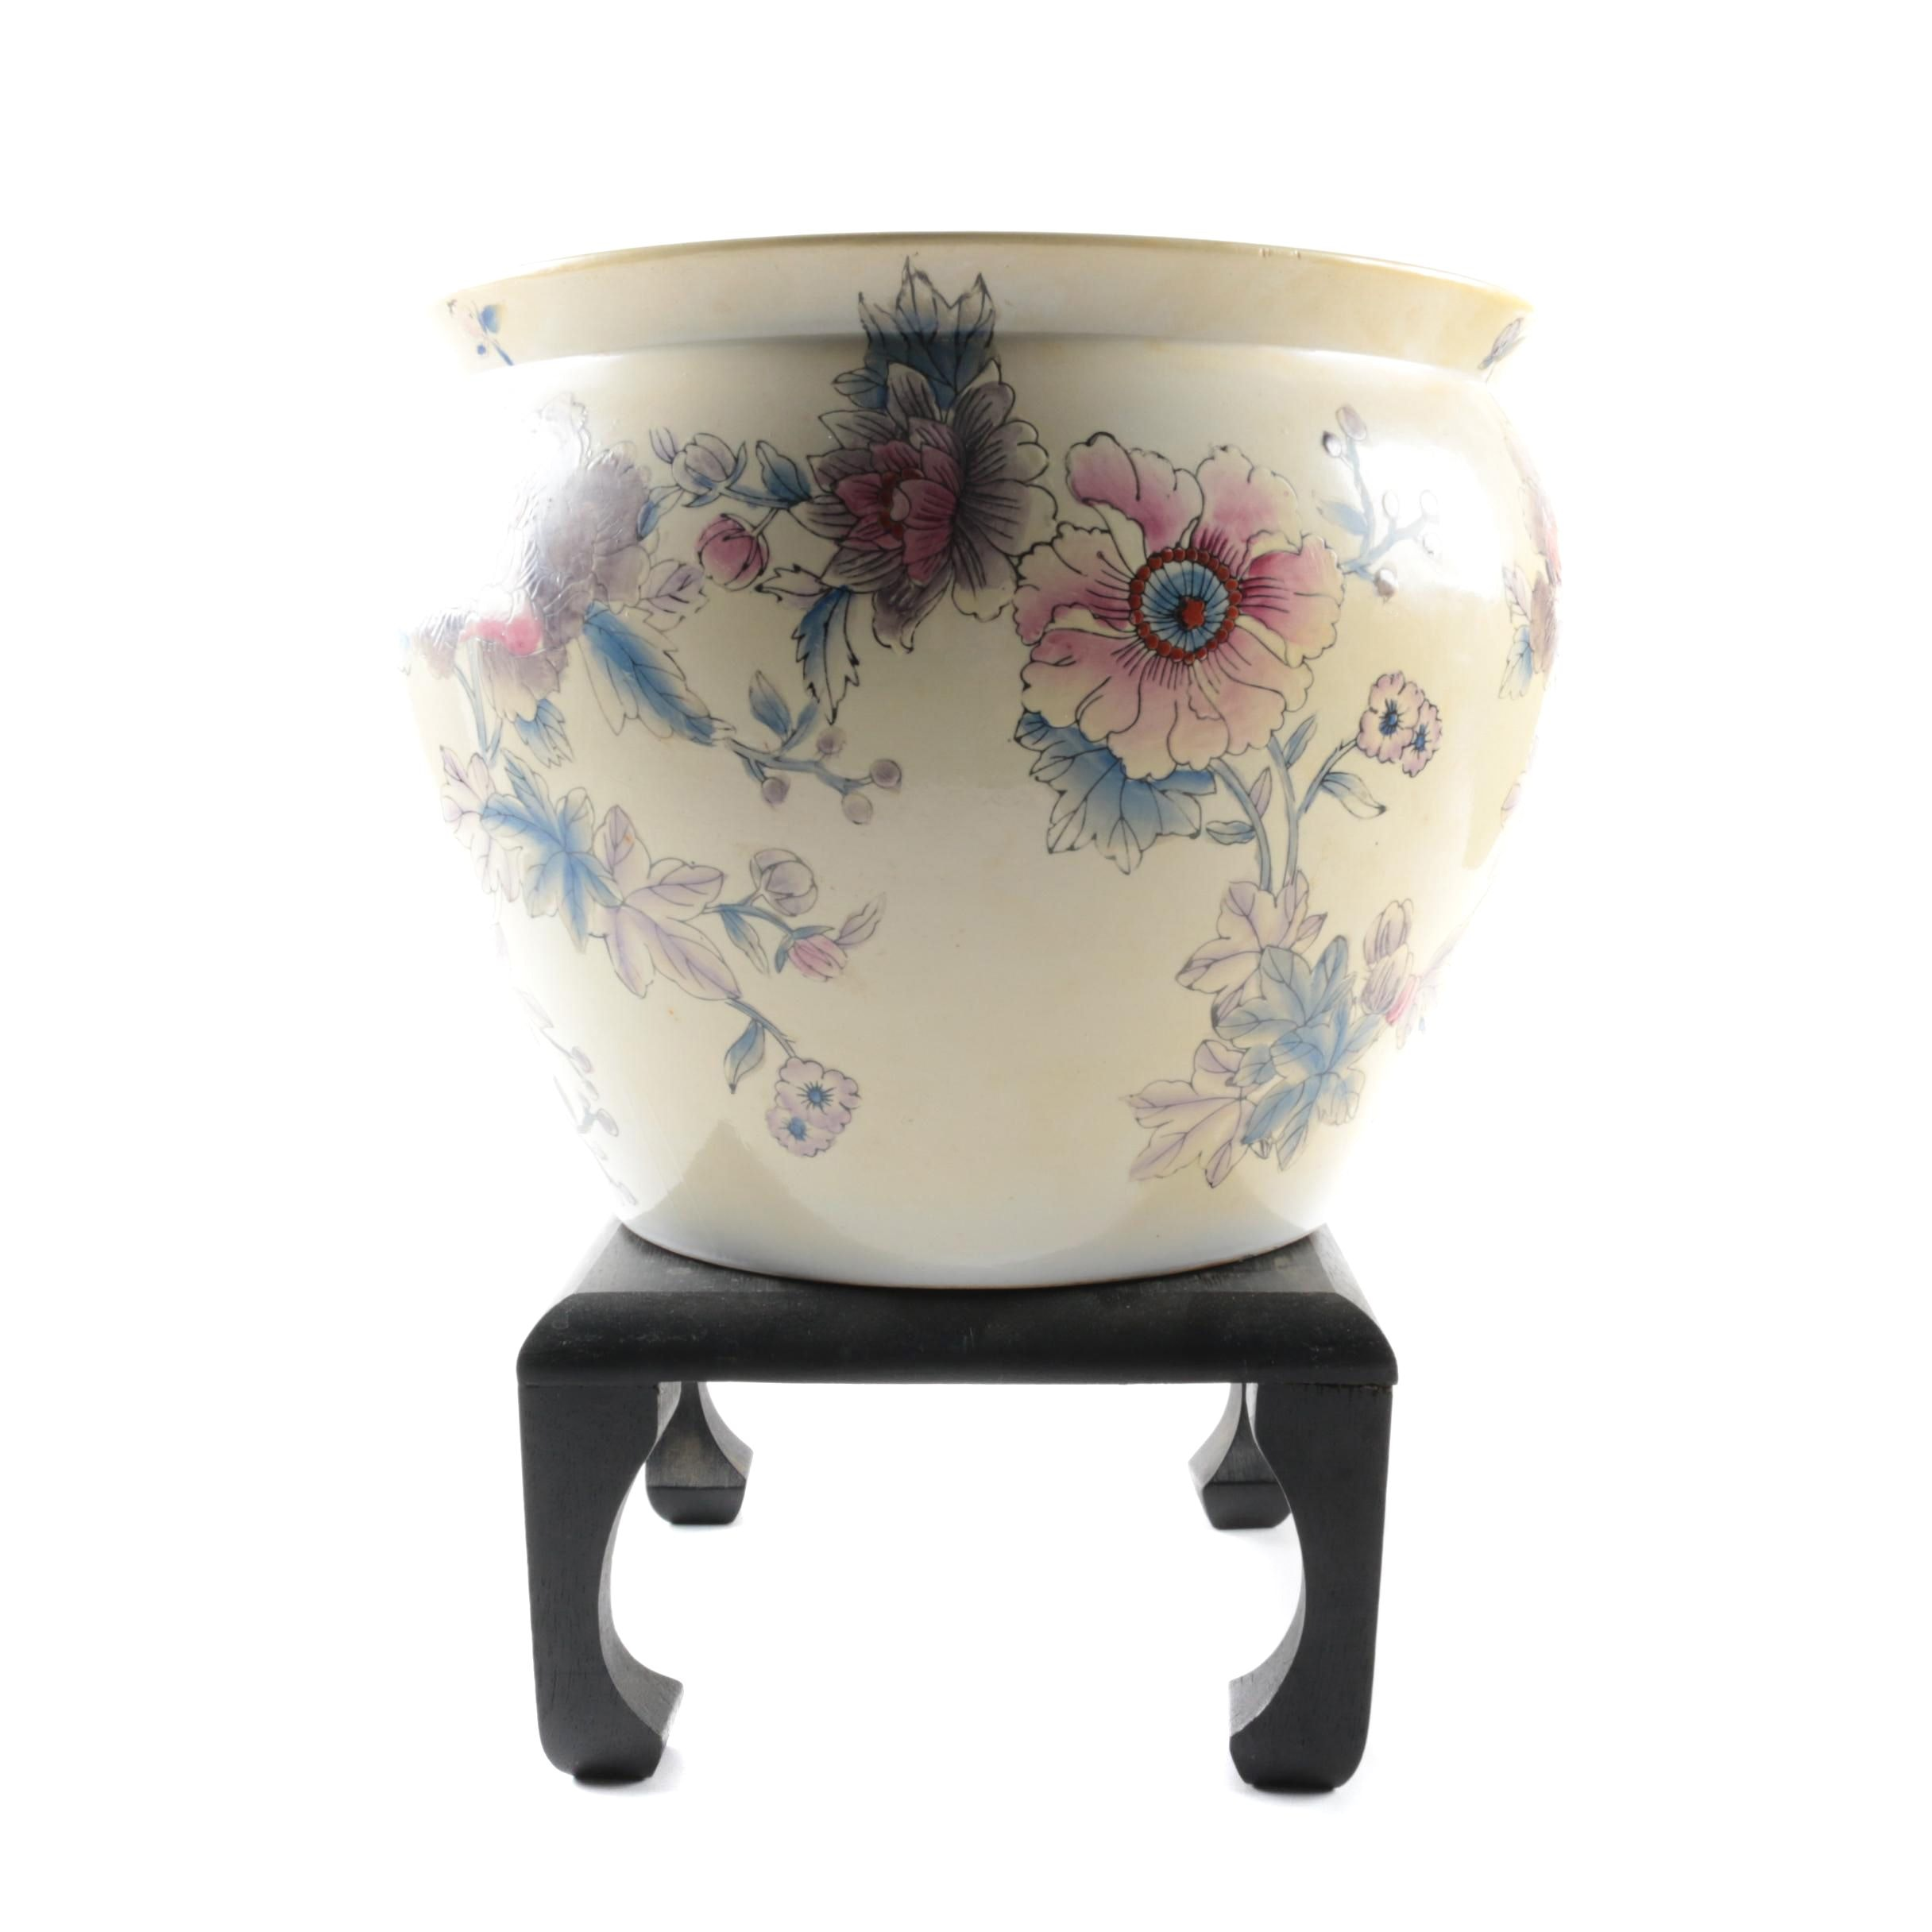 Floral Ceramic Planter with Stand